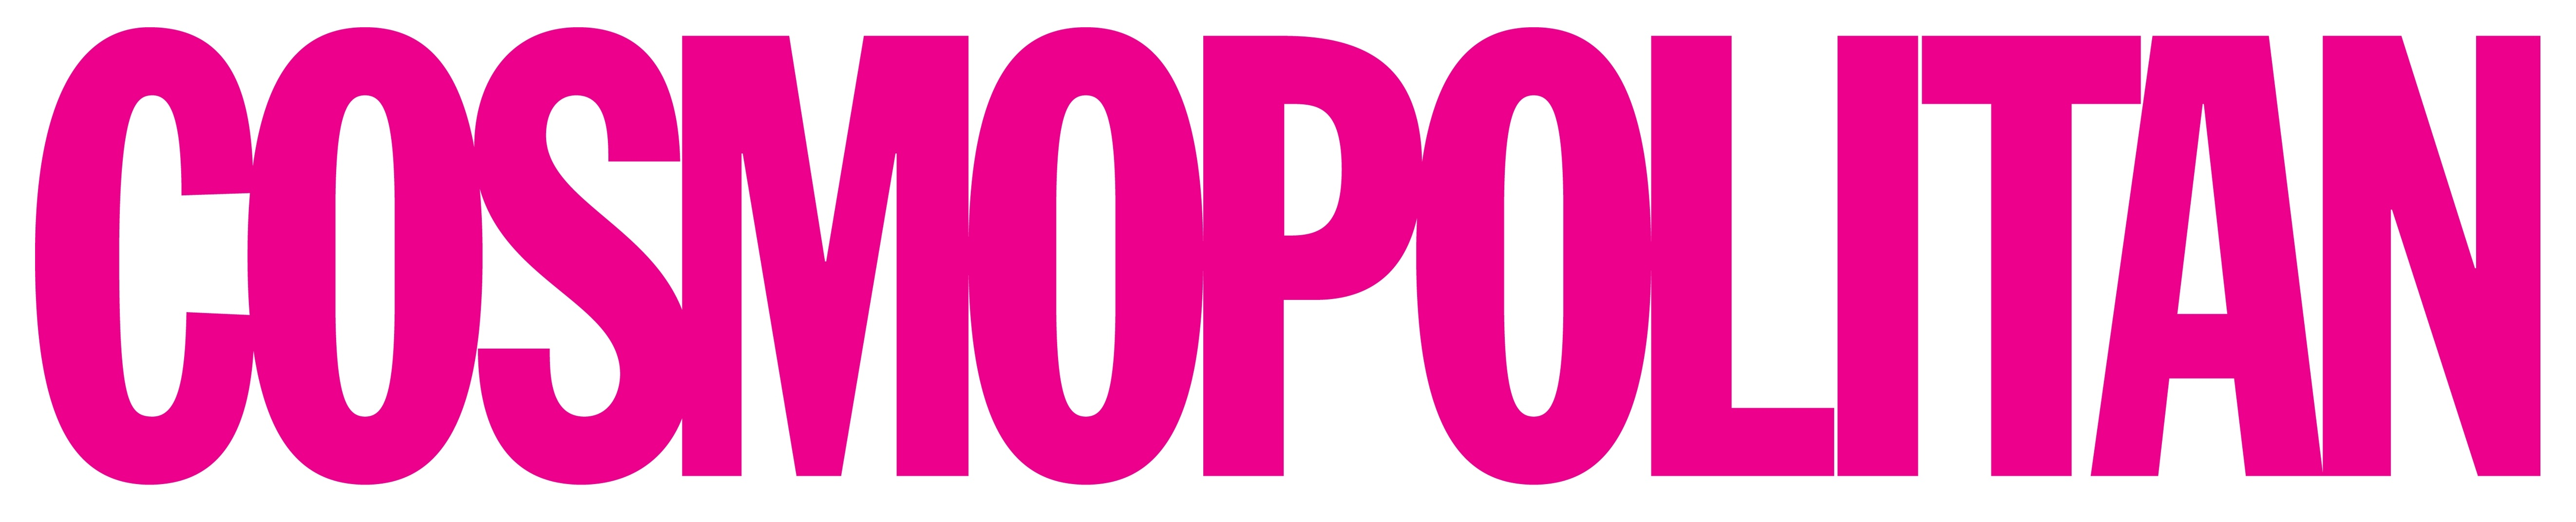 cosmopolitan-magazine-logo.jpg->description